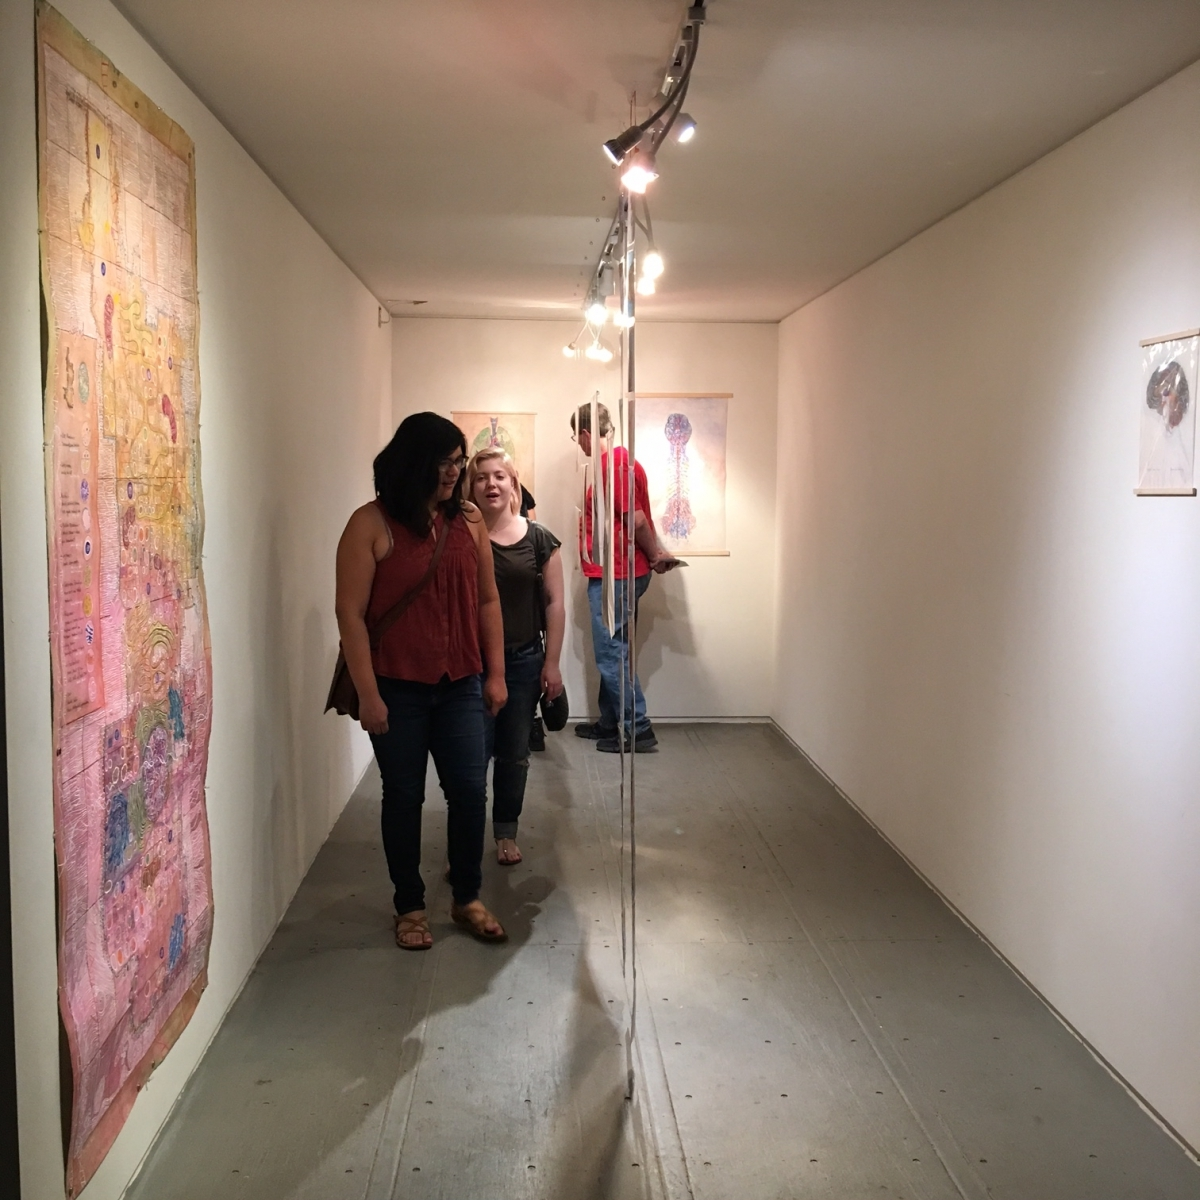 Monica Aissa Martinez, Cella, Third Friday exhibition opening with visitors, 3-18-16Photo credit: Ted Decker